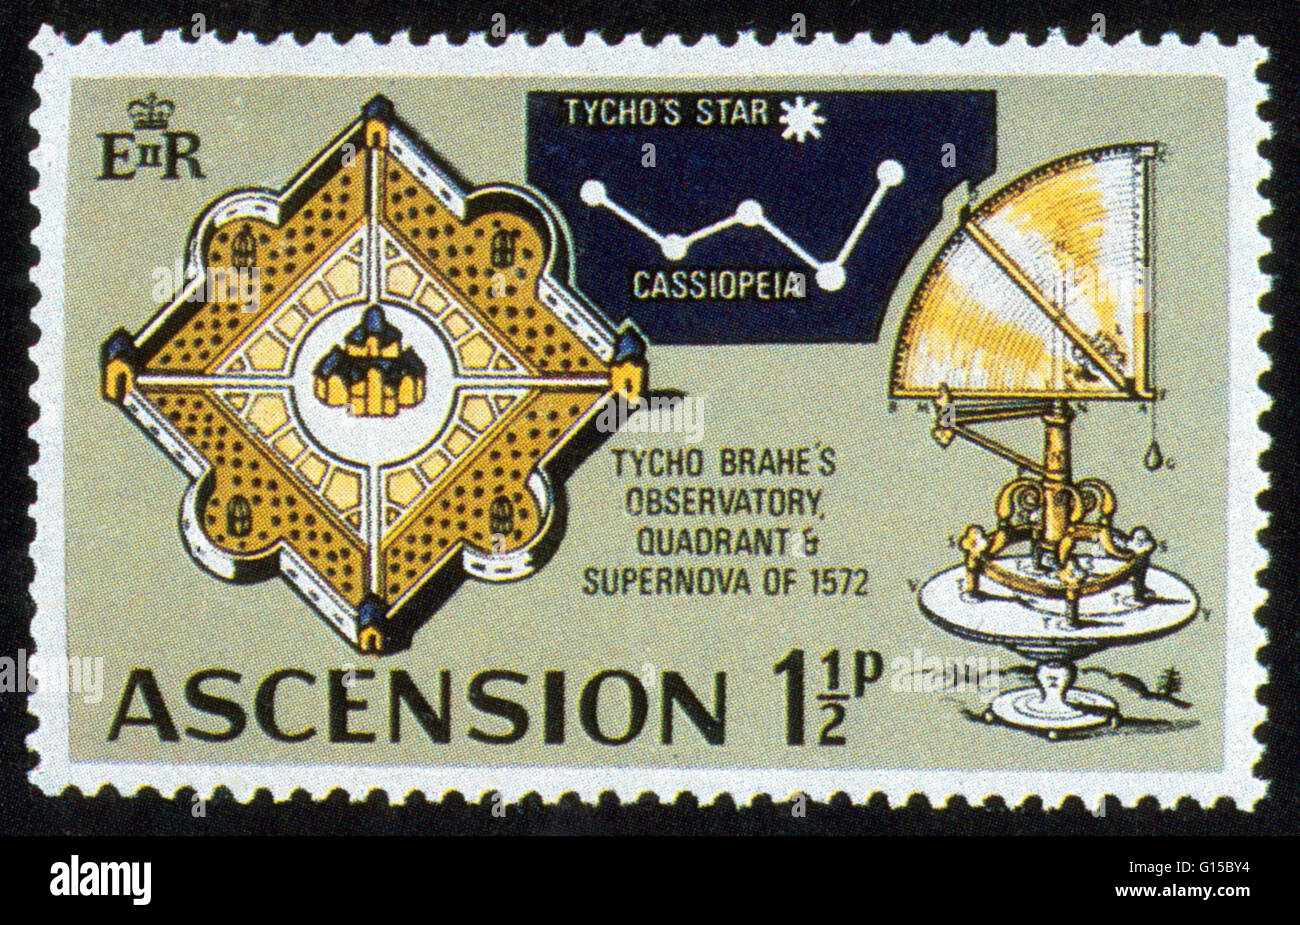 A postage stamp showing Uraniborg, an astronomical observatory operated by Tycho Brahe, along with Tycho's star, - Stock Image